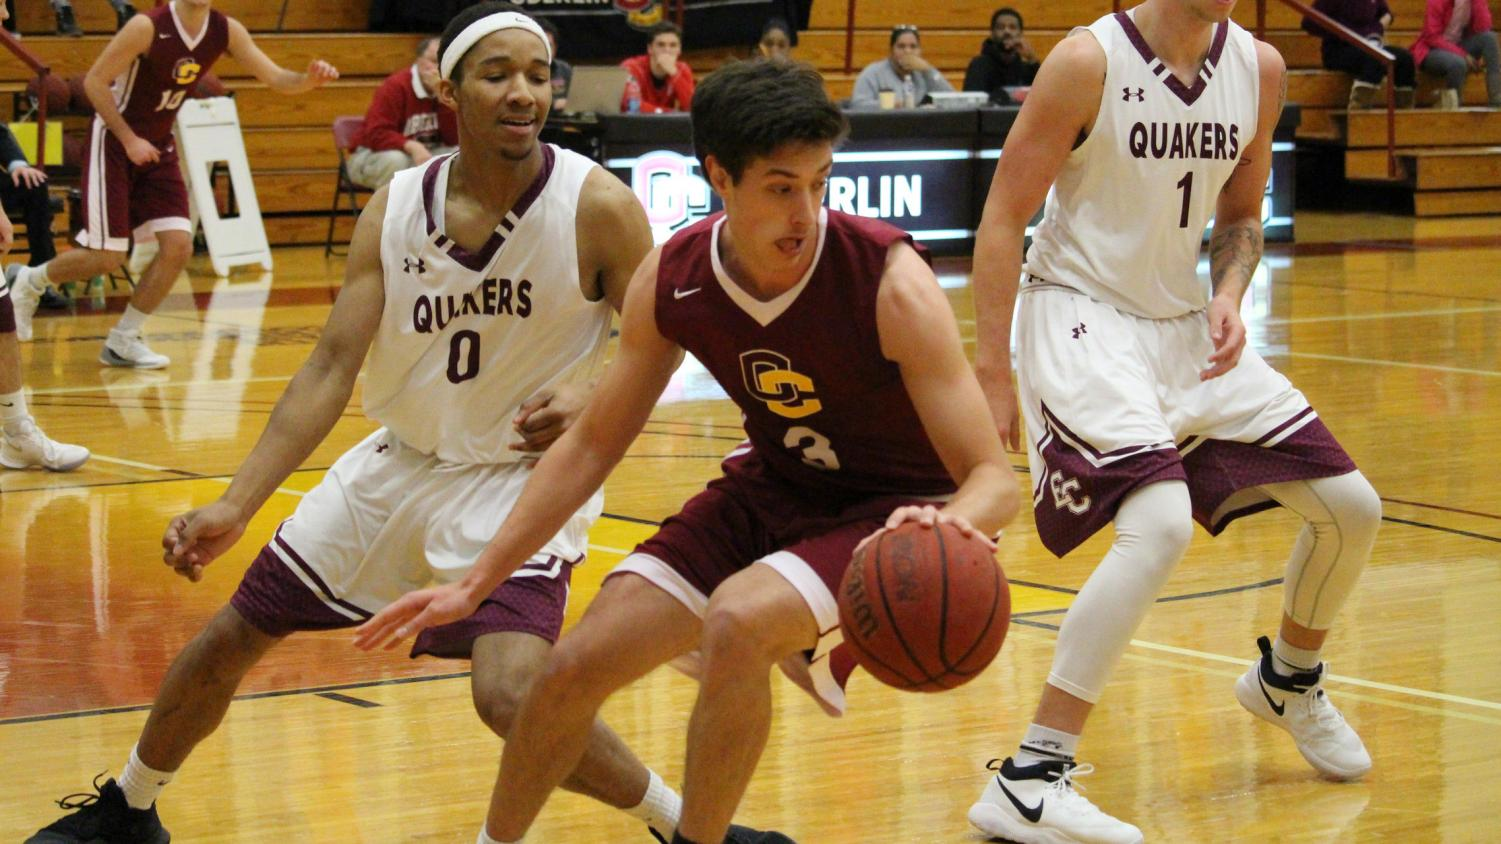 Junior guard Eli Silverman-Lloyd spins by the Earlham College Quakers on his way to 12 points in the Yeomen's 81–80 home win Nov. 19. The Yeomen, who are 4–2 this season, play their next game against the Hiram College Terriers in Philips gym at 3 p.m. tomorrow.